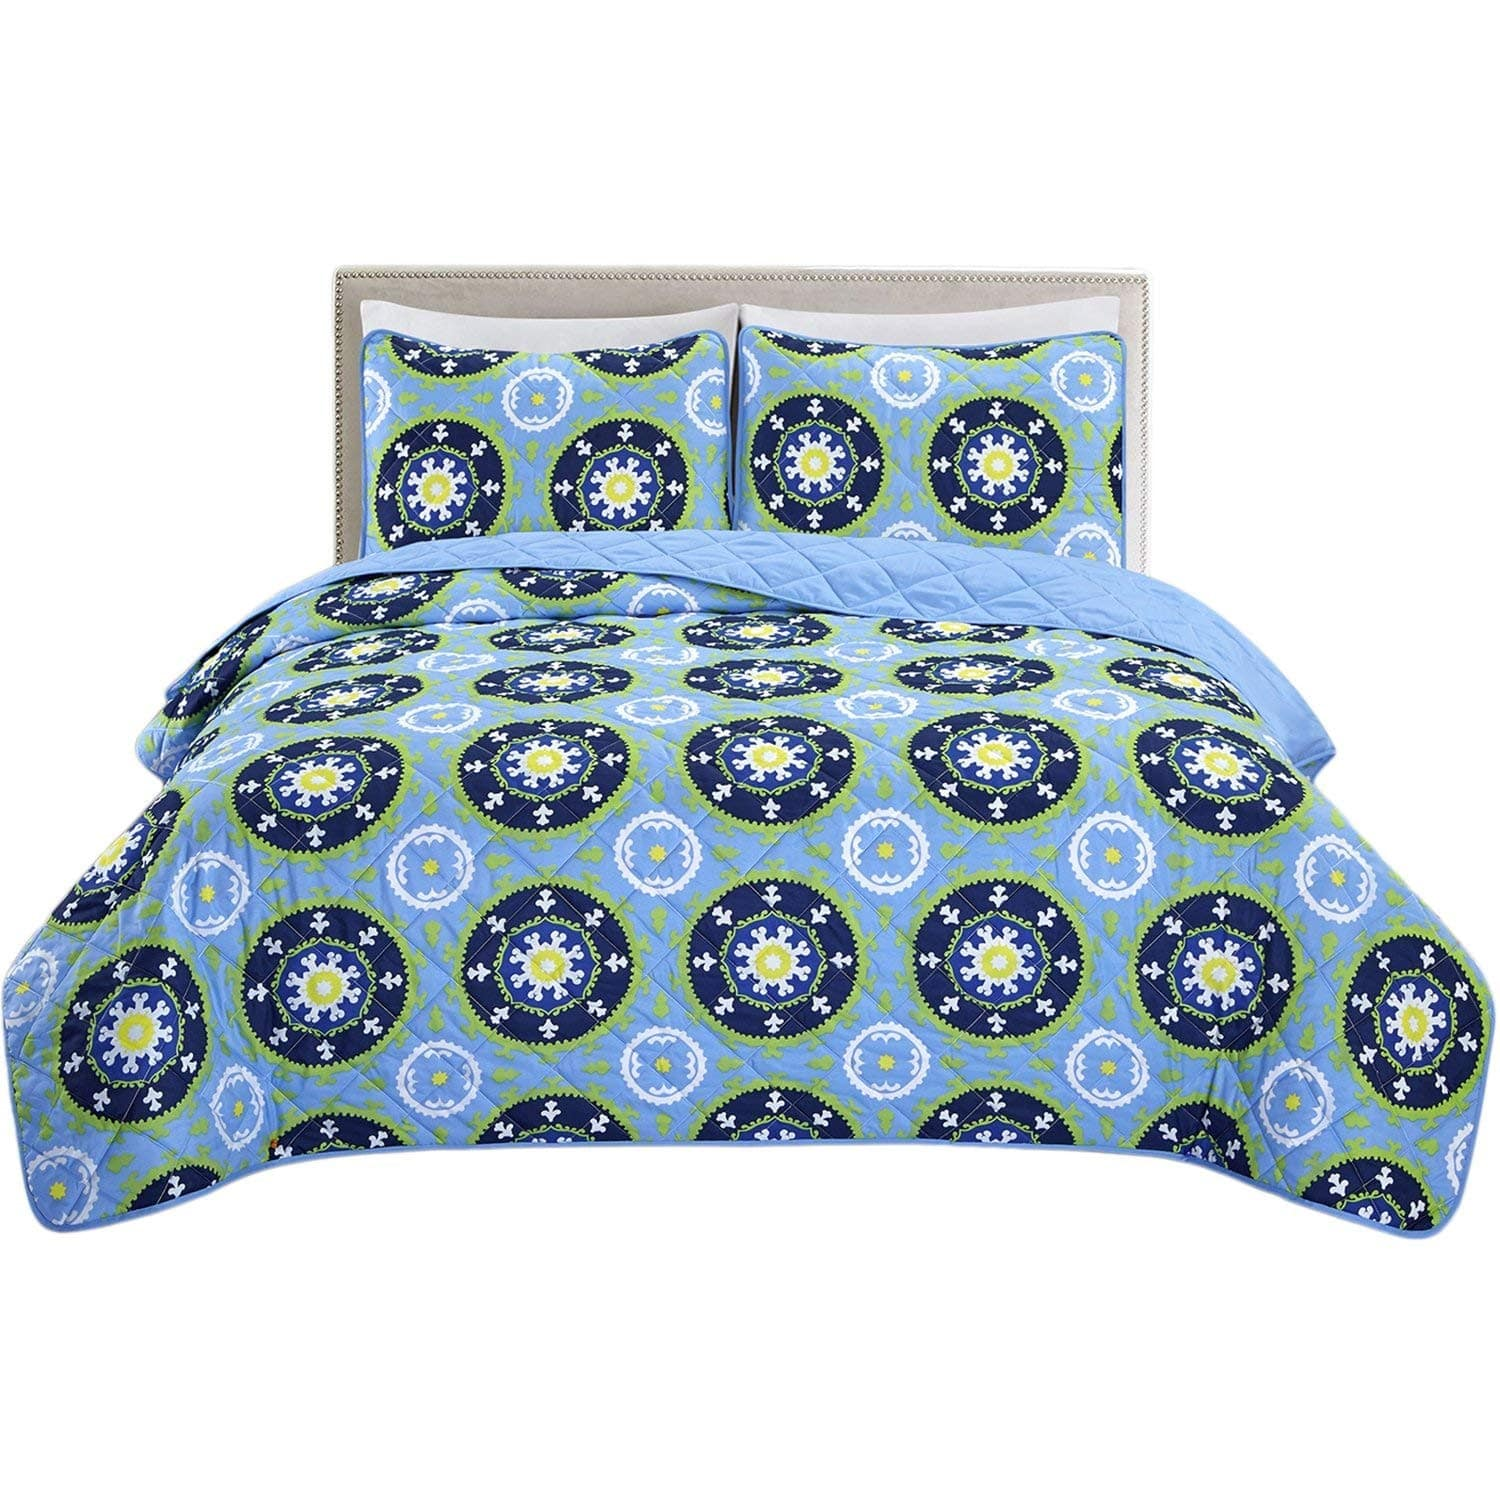 HollyHOME Bedspreads & Comforters Various Sizes & Patterns $8.33